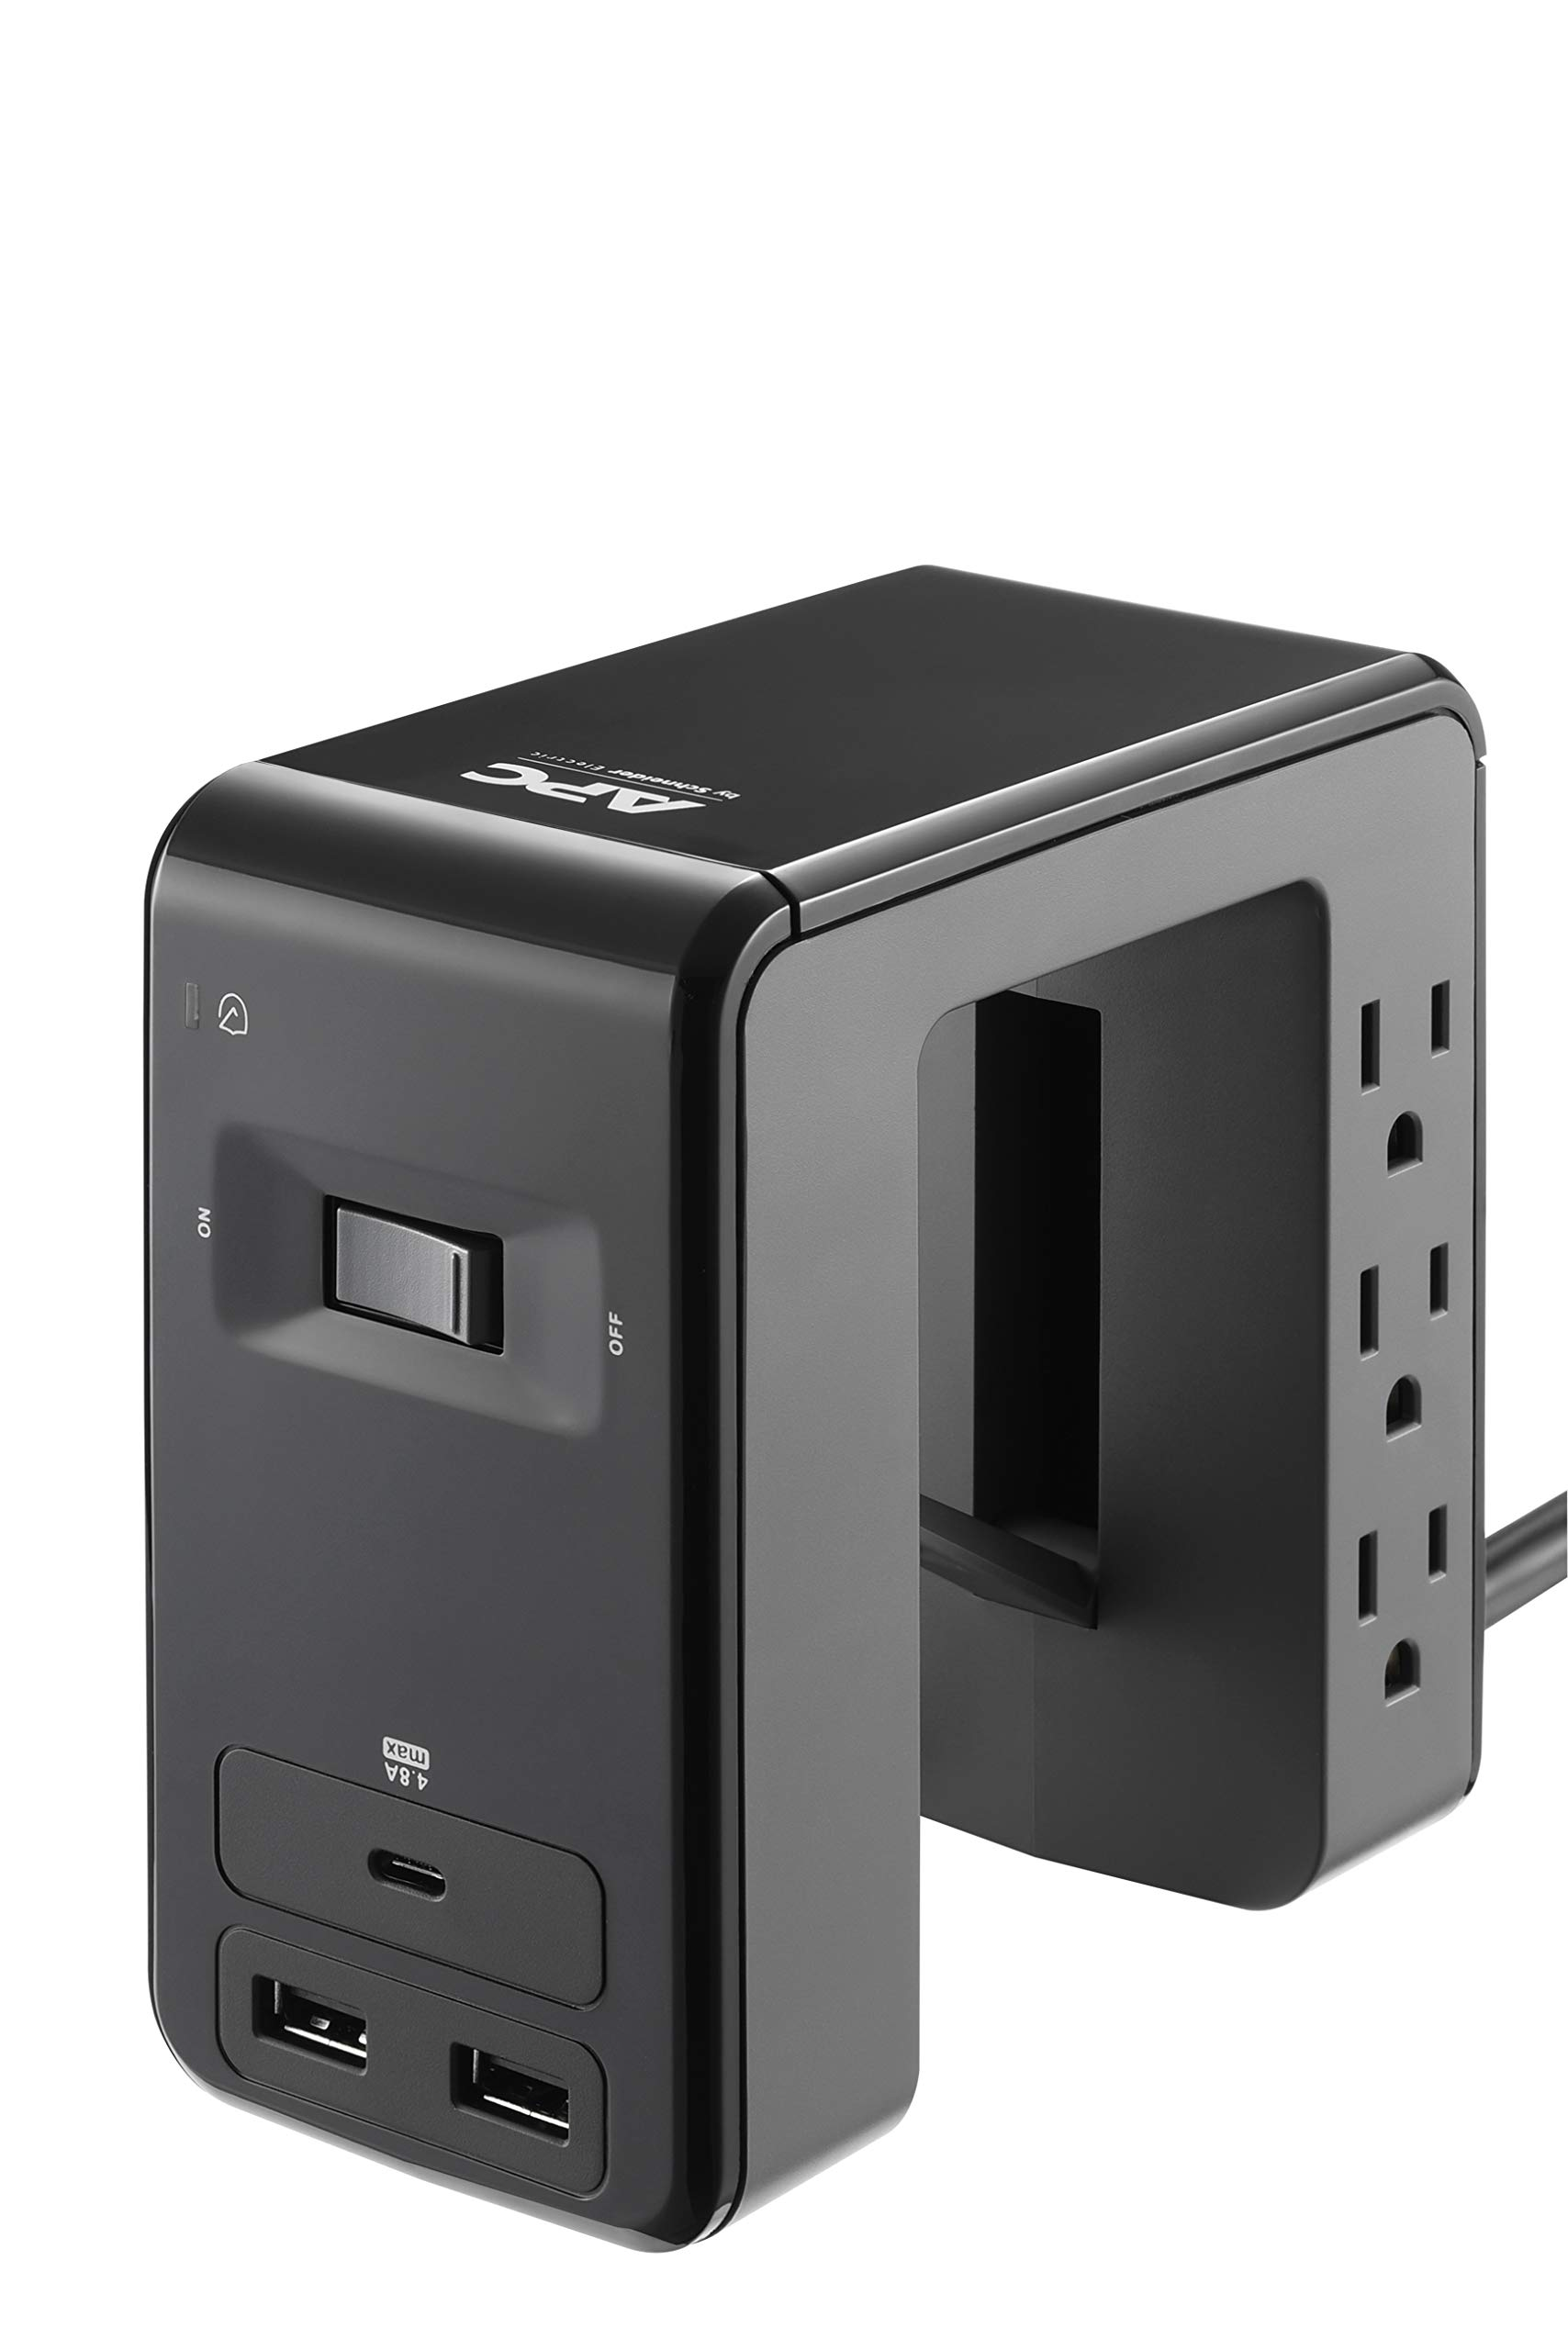 APC Desk Mount Power Station, 6 Outlet U-Shaped Surge Protector, 1080 Joule of Surge Protection with 1 Type C USB Charging Port, and 2 Type A Charging Ports (PE6U21), Black